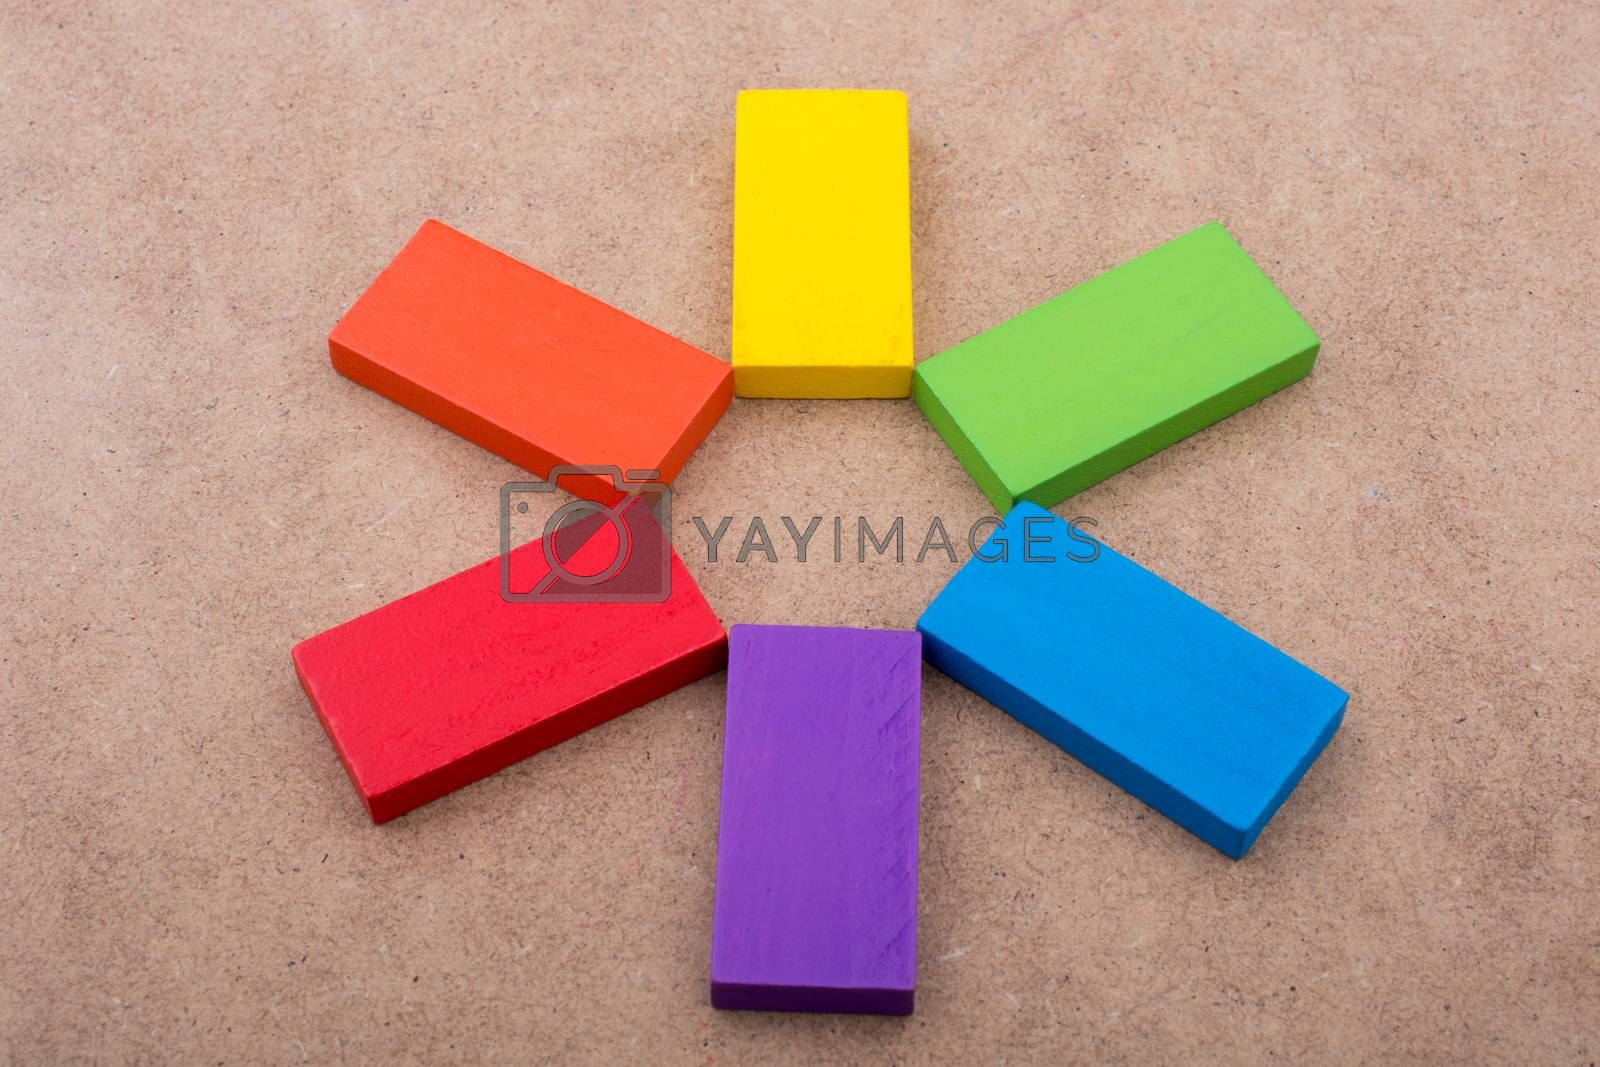 Hand holding one of the wooden blocks of various colors